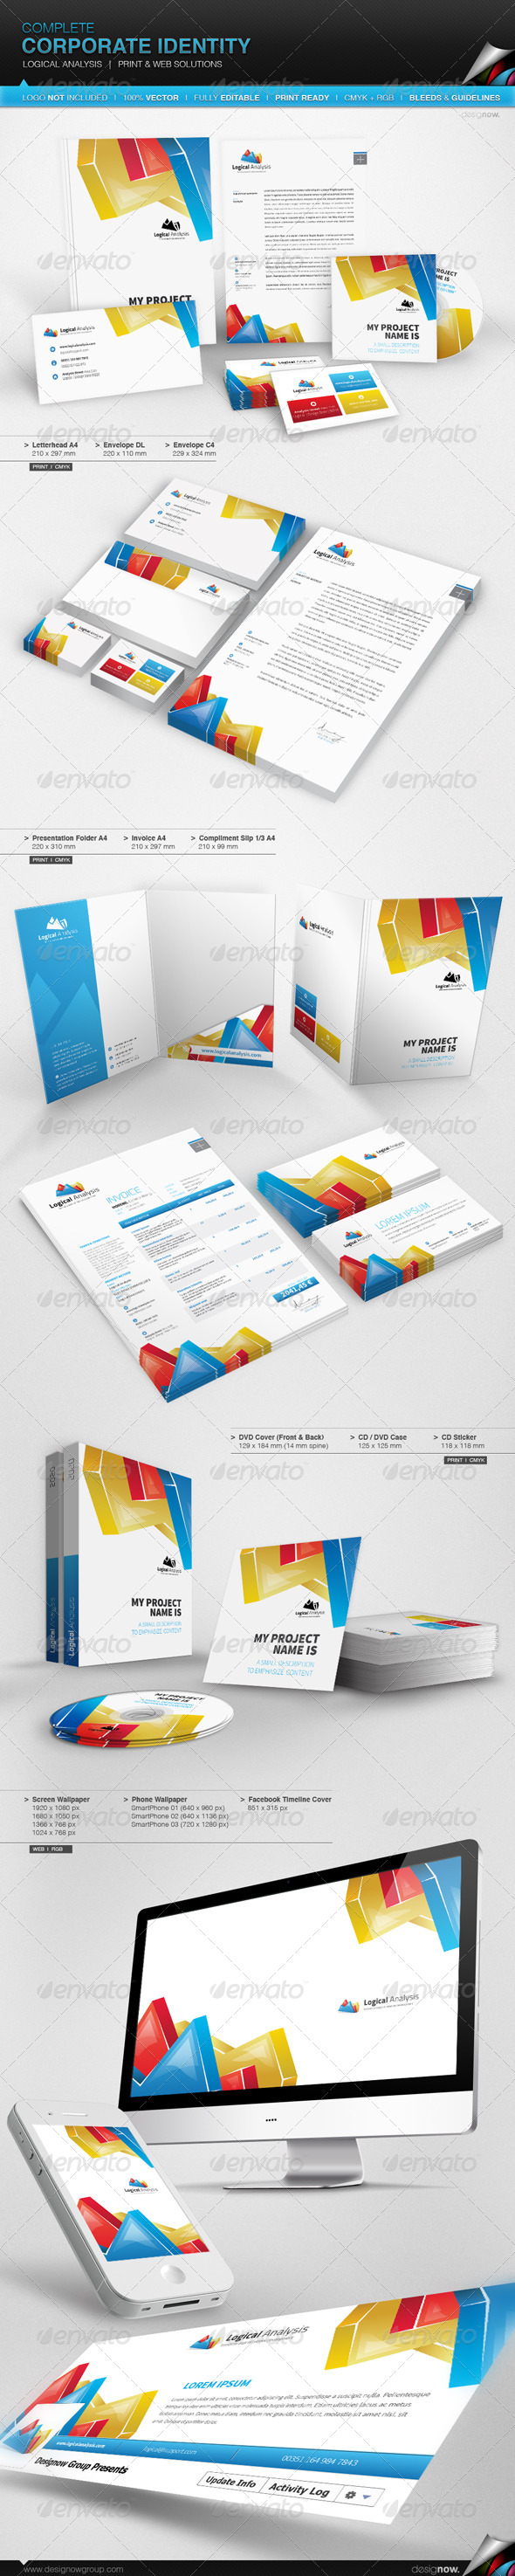 Corporate Identity - Logical Analysis - Print Templates